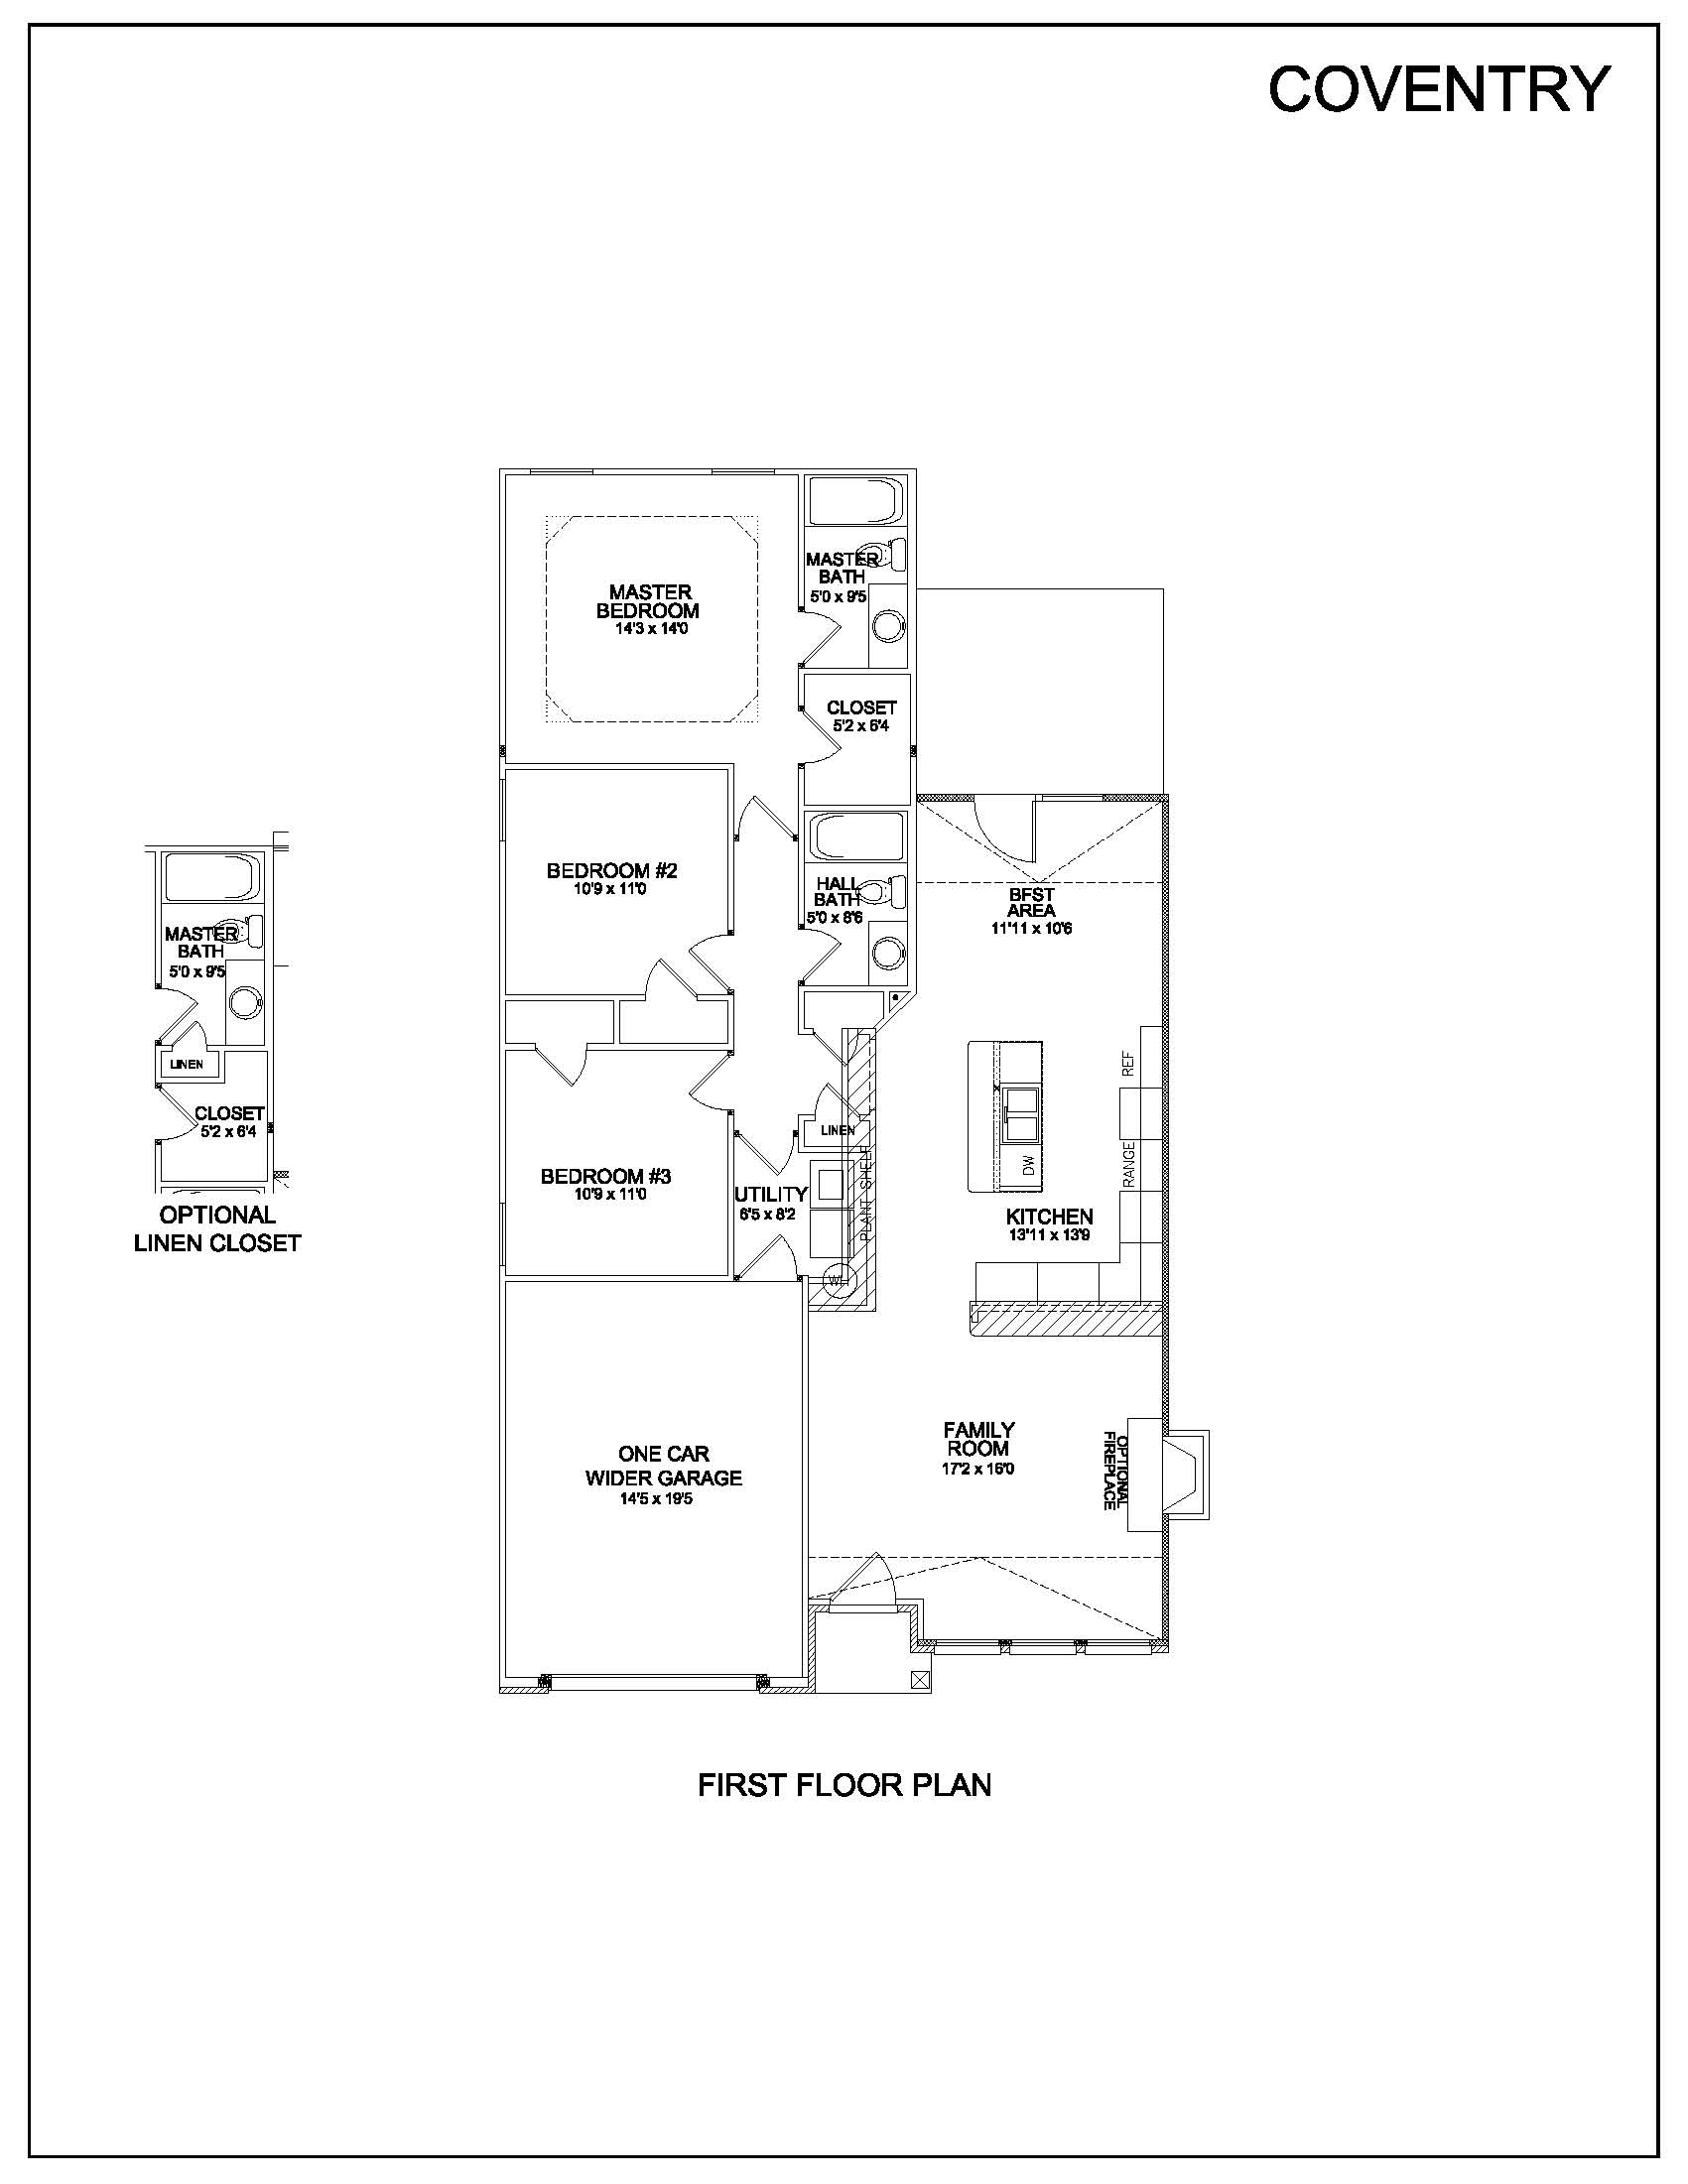 Floor Plans Coventry Louisville Kentucky Real Estate